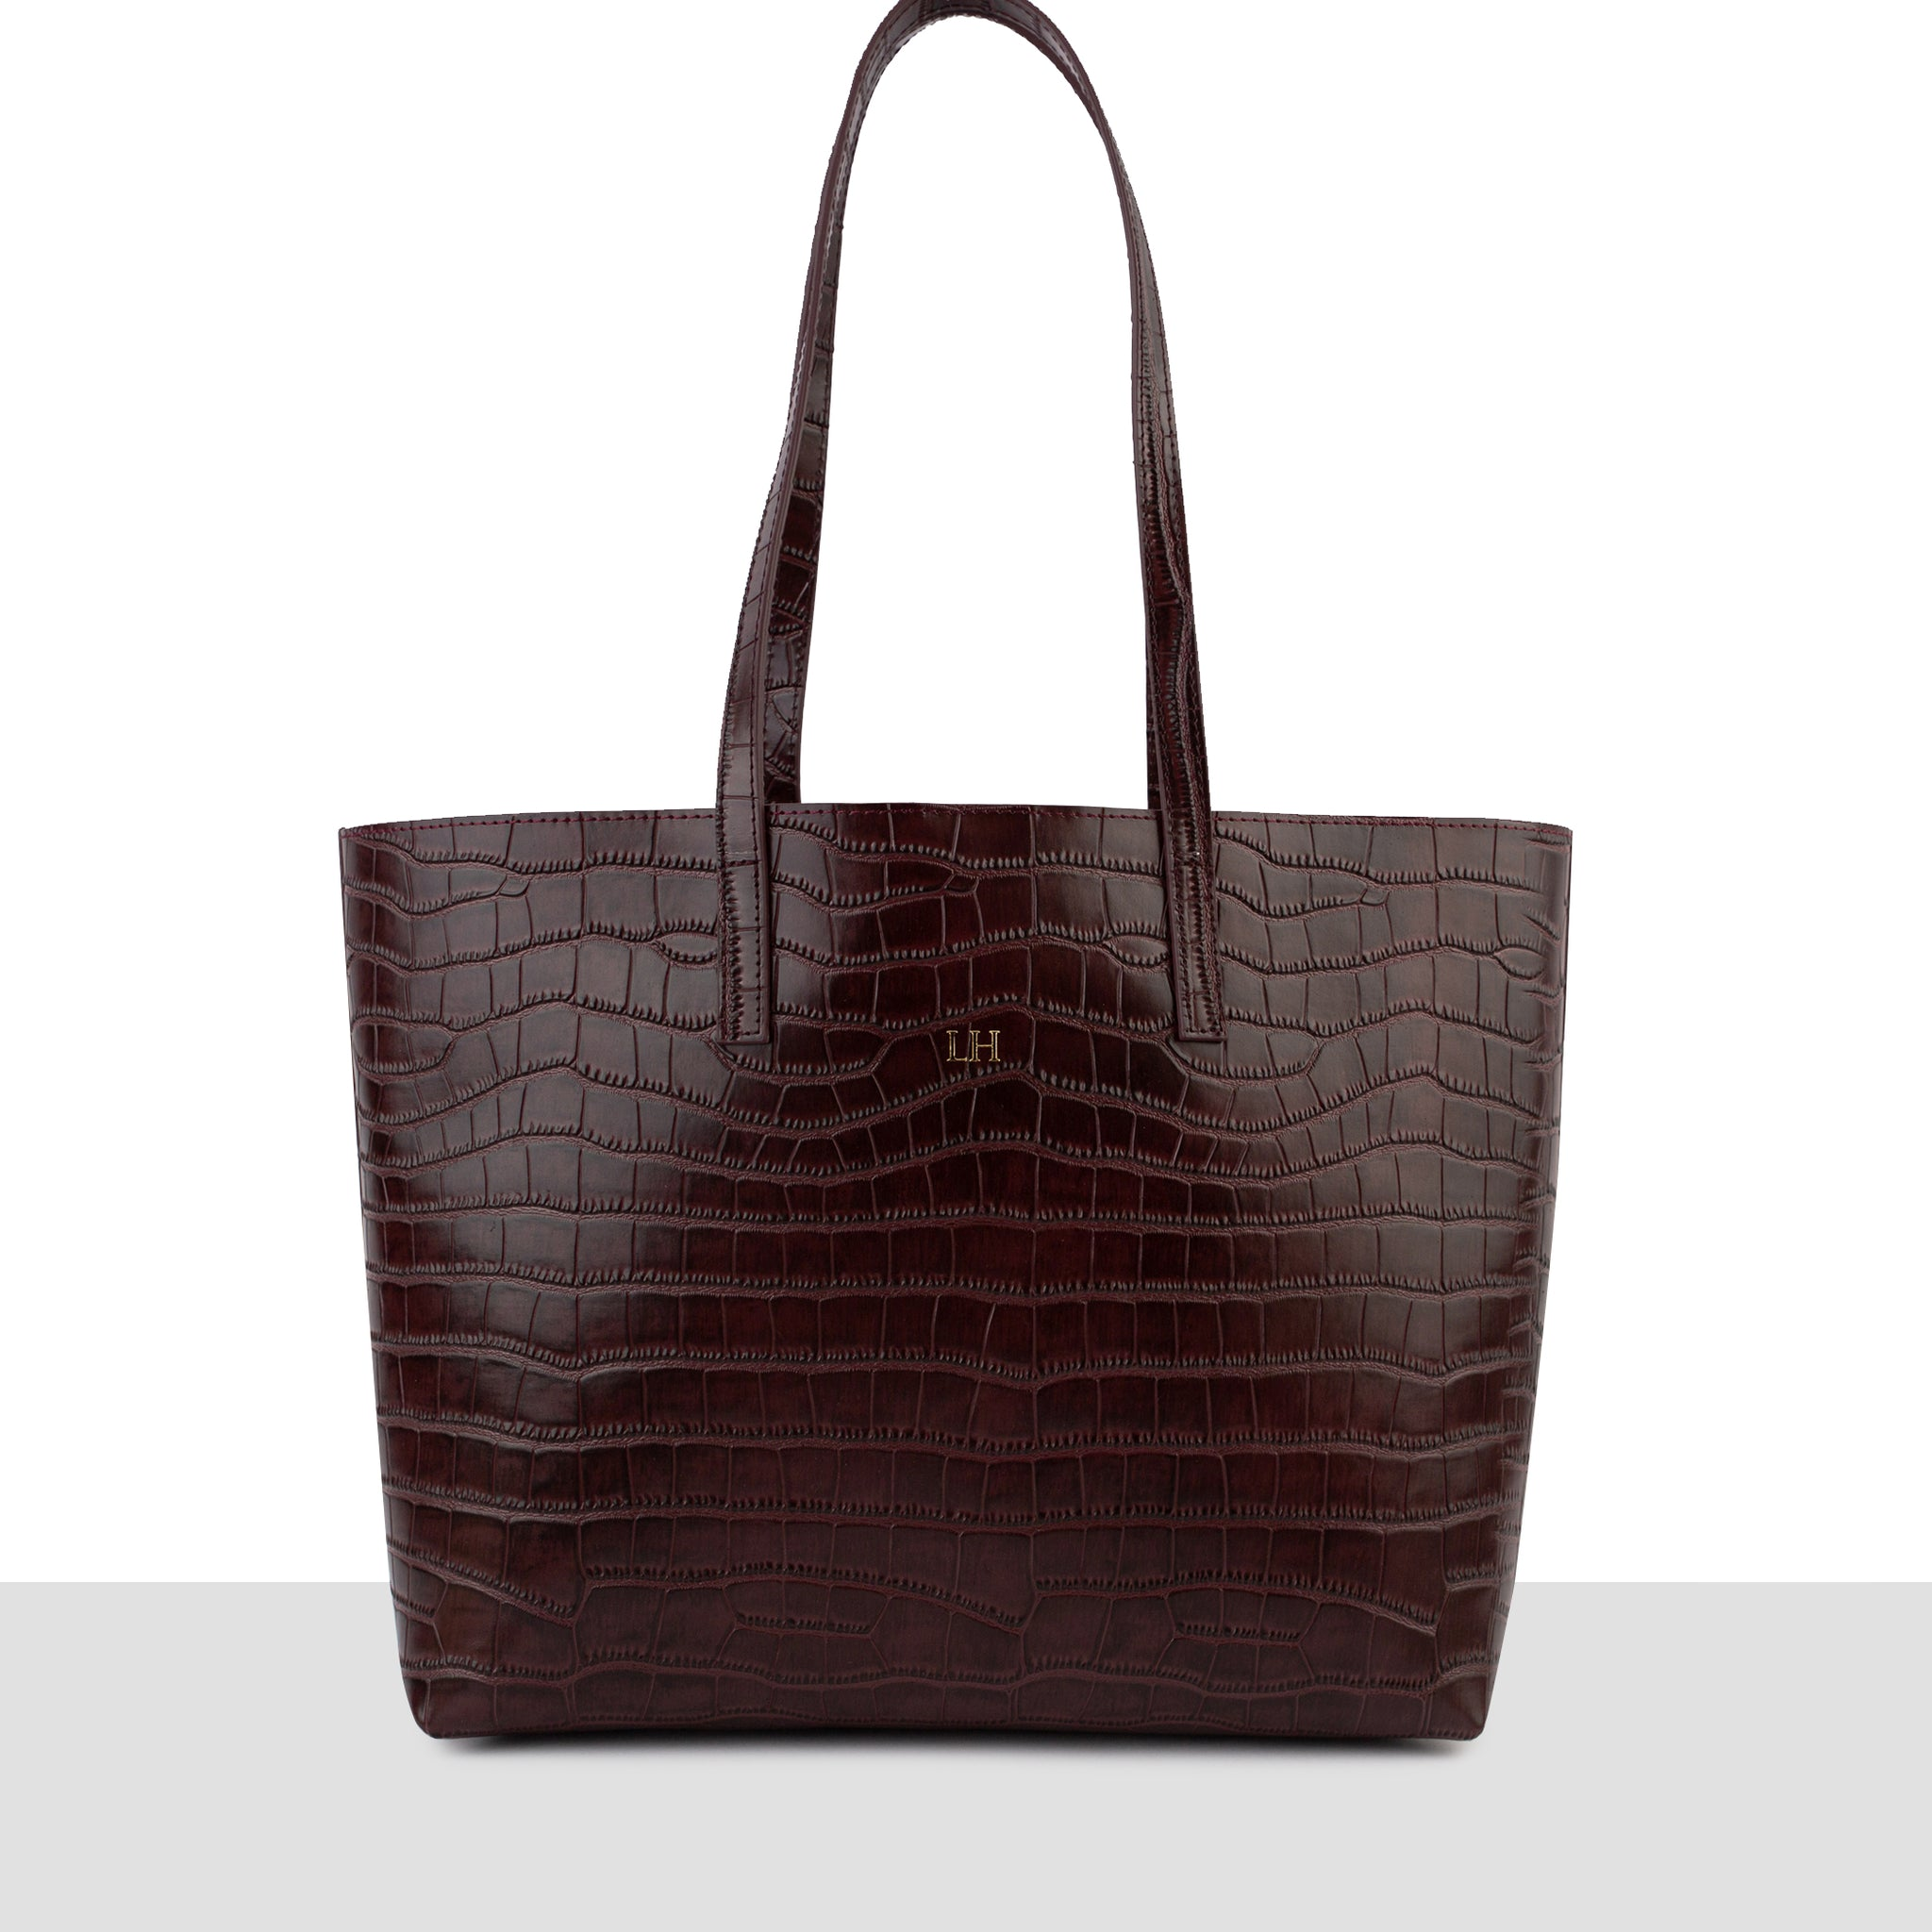 'Stockholm'  Chocolate Leather Croc Tote Bag